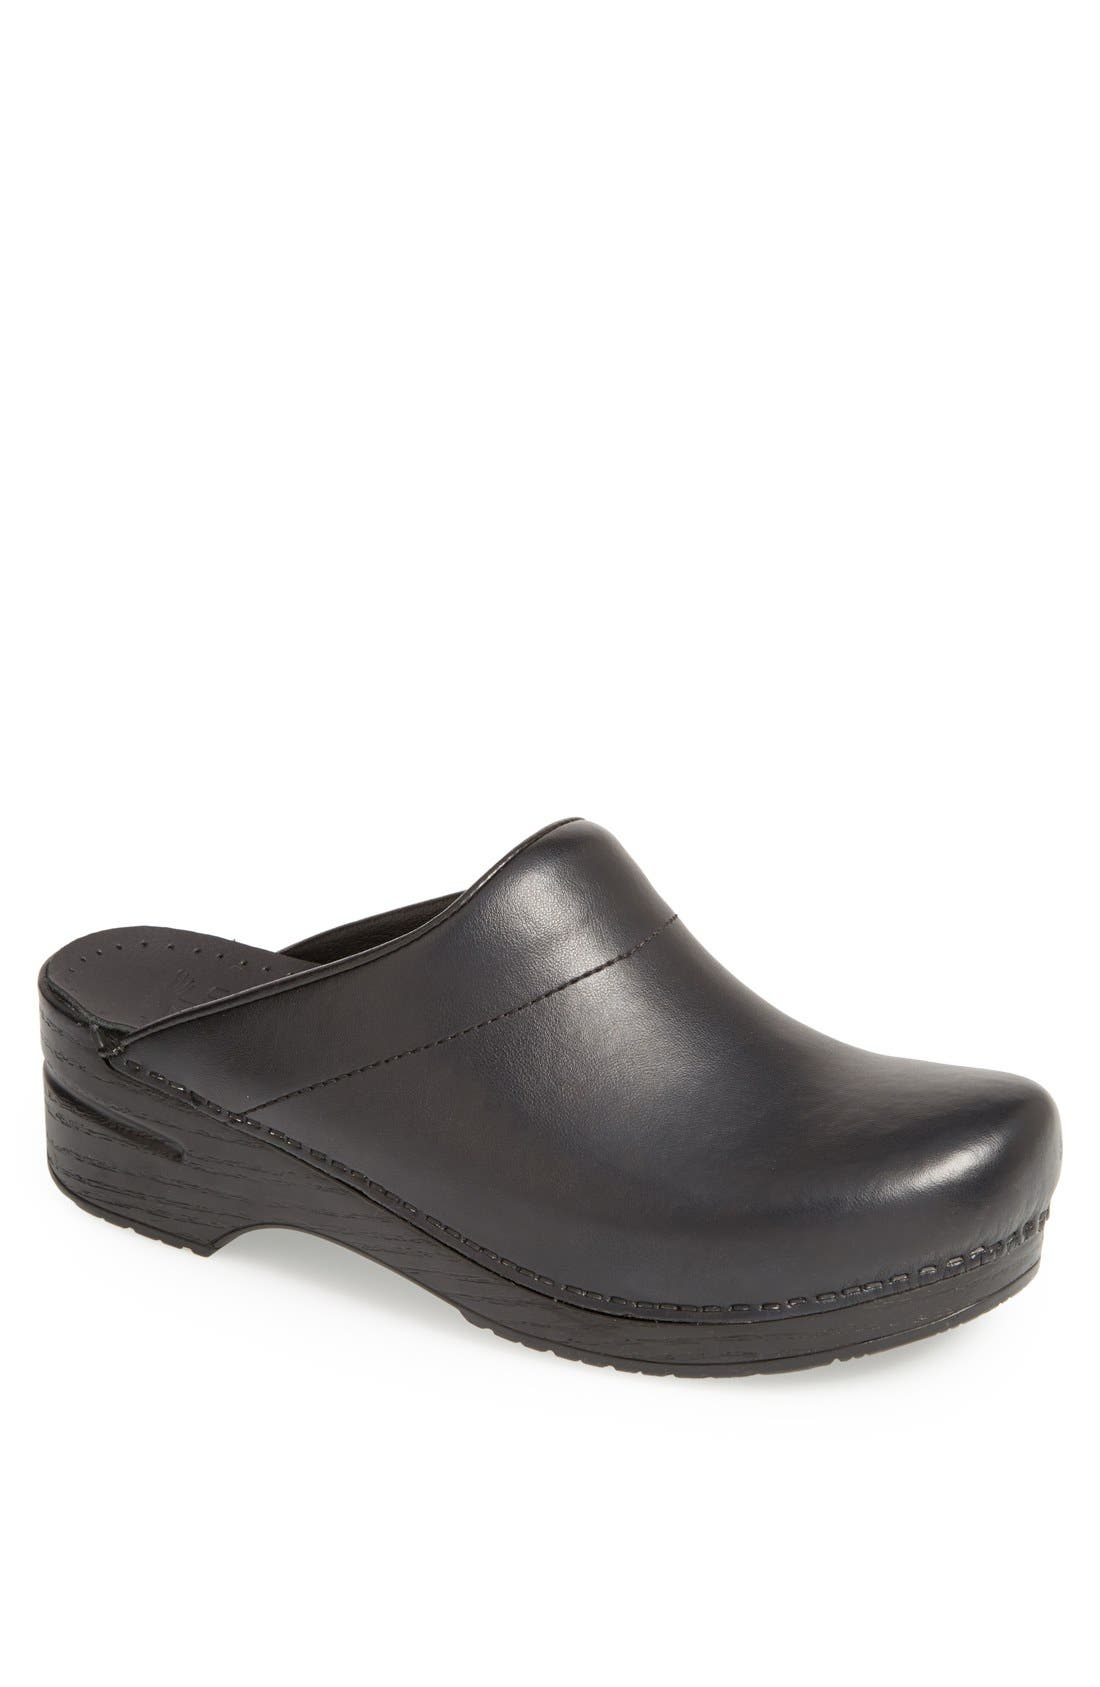 'Karl' Slip-On,                         Main,                         color, Black Box